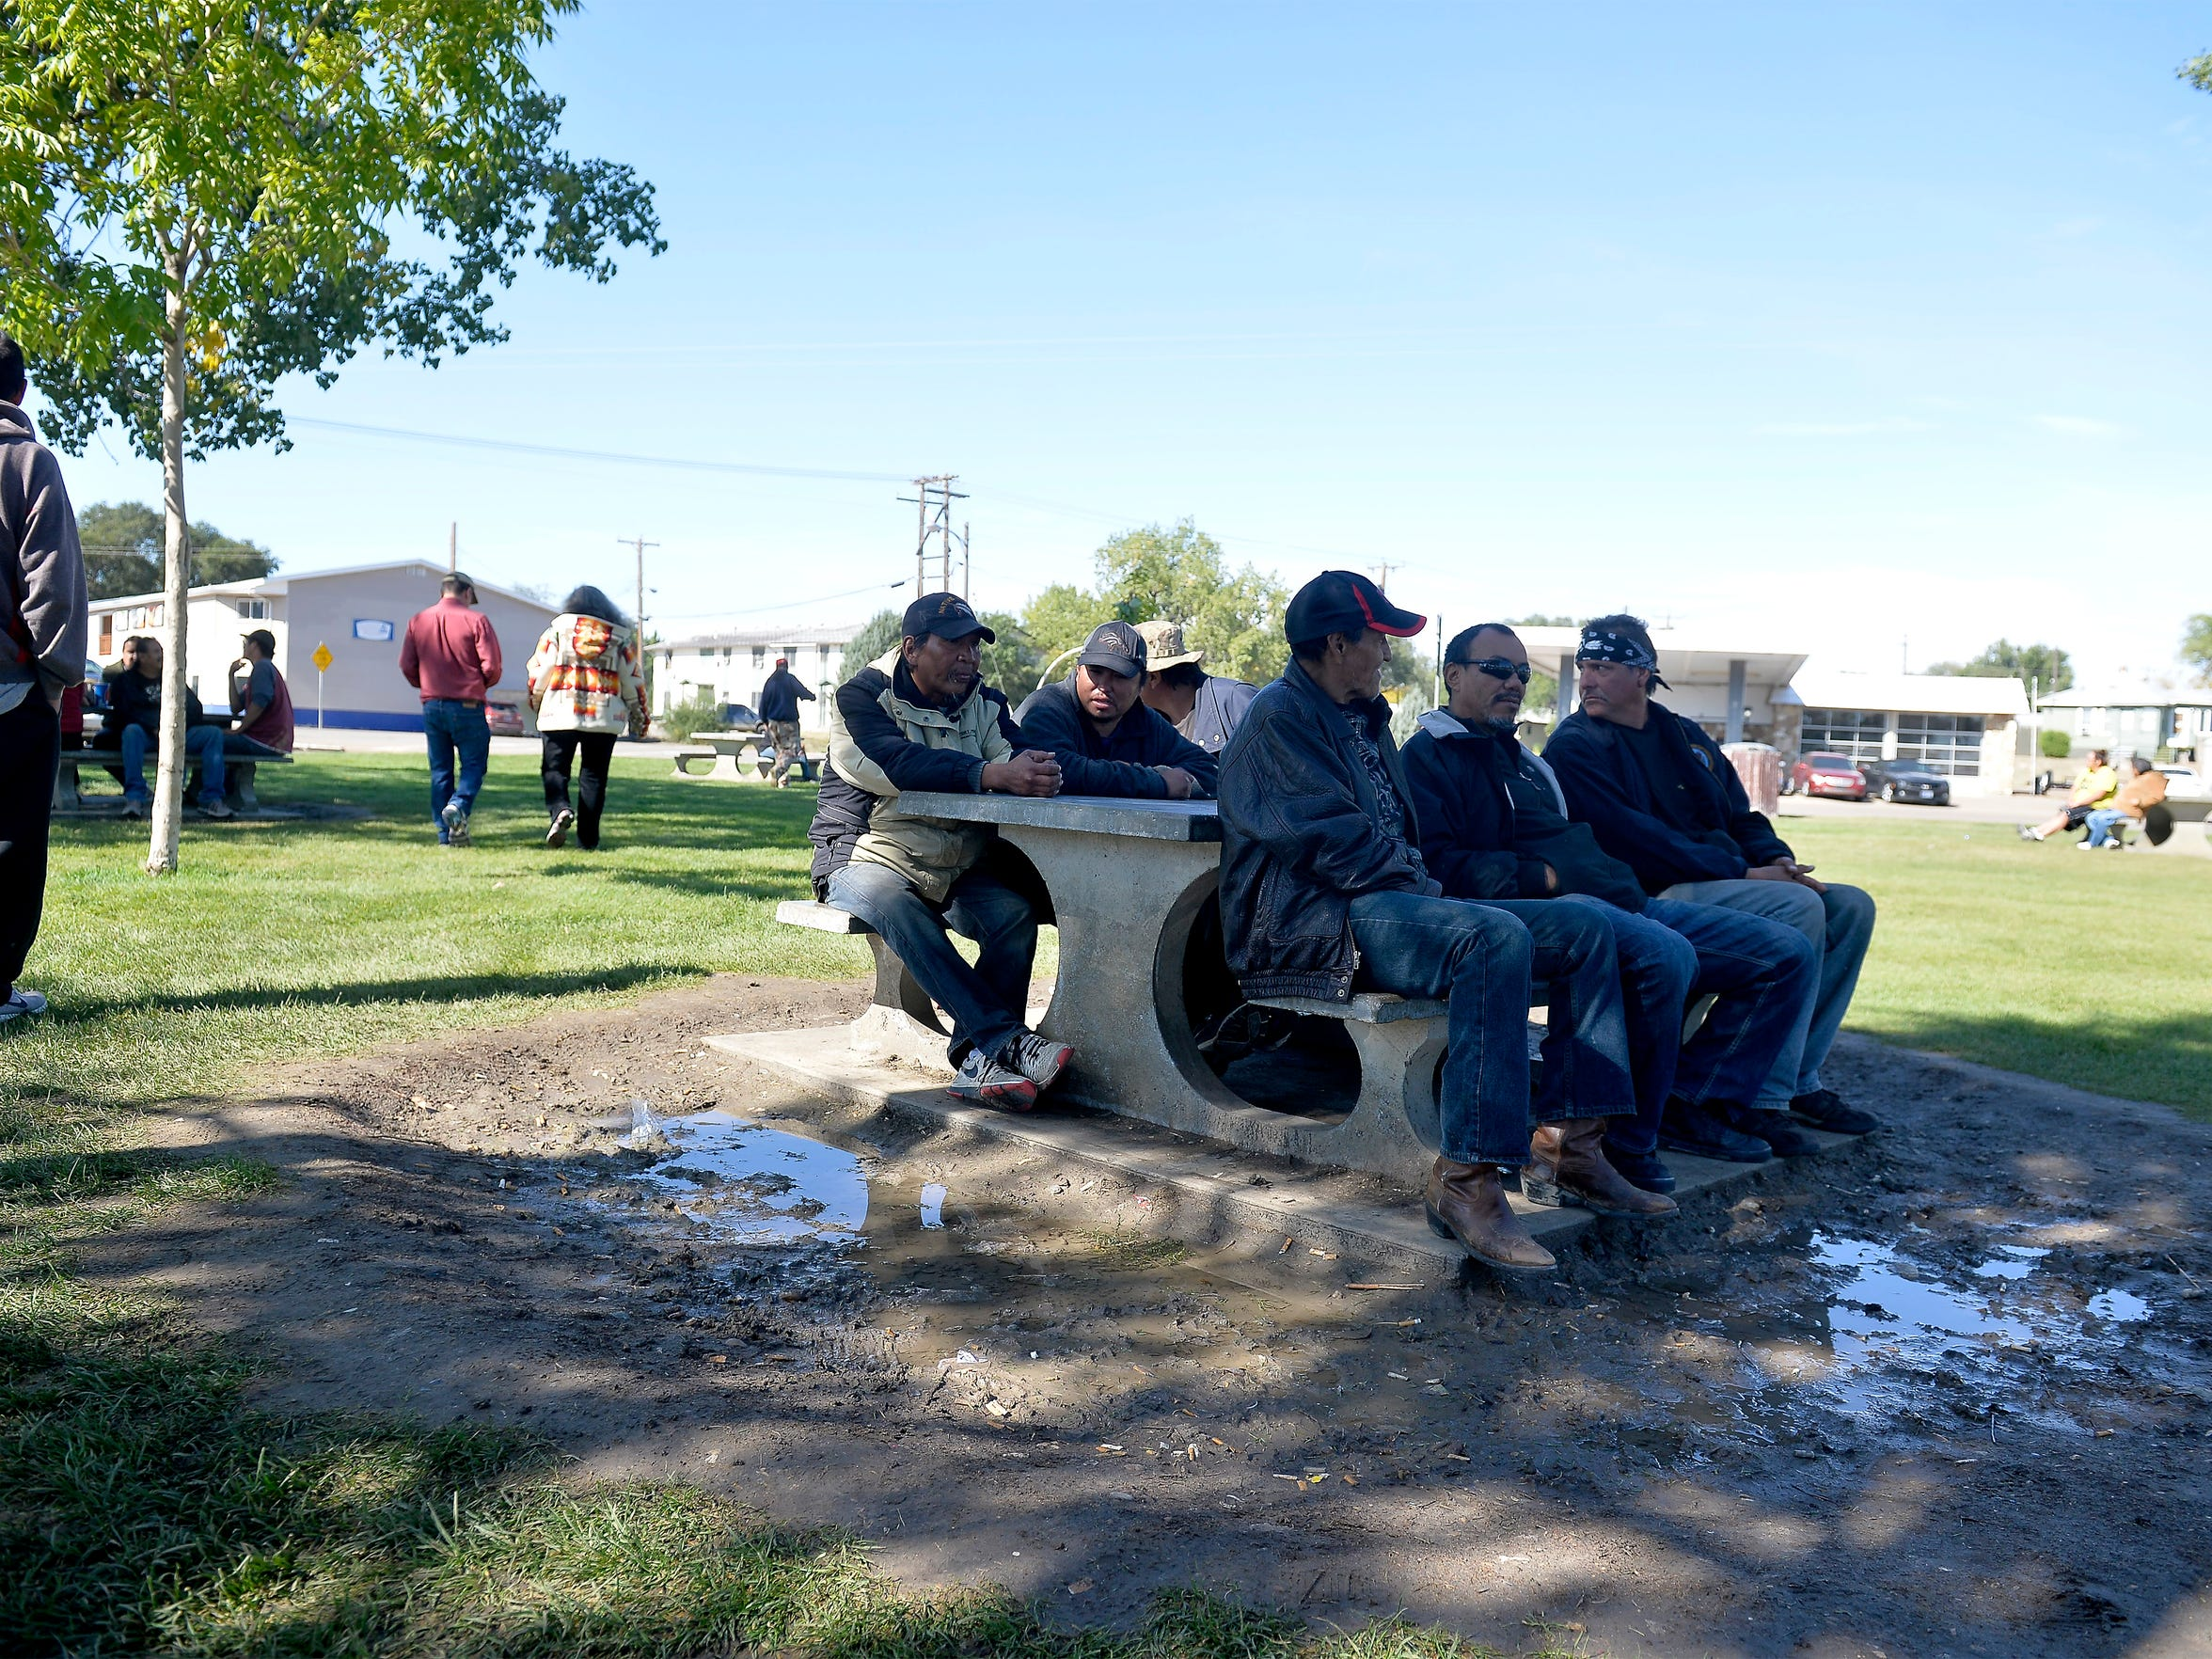 Triangle Park in Wolf Point is a hangout spot for people experience homelessness who congregate at the park all day most days.